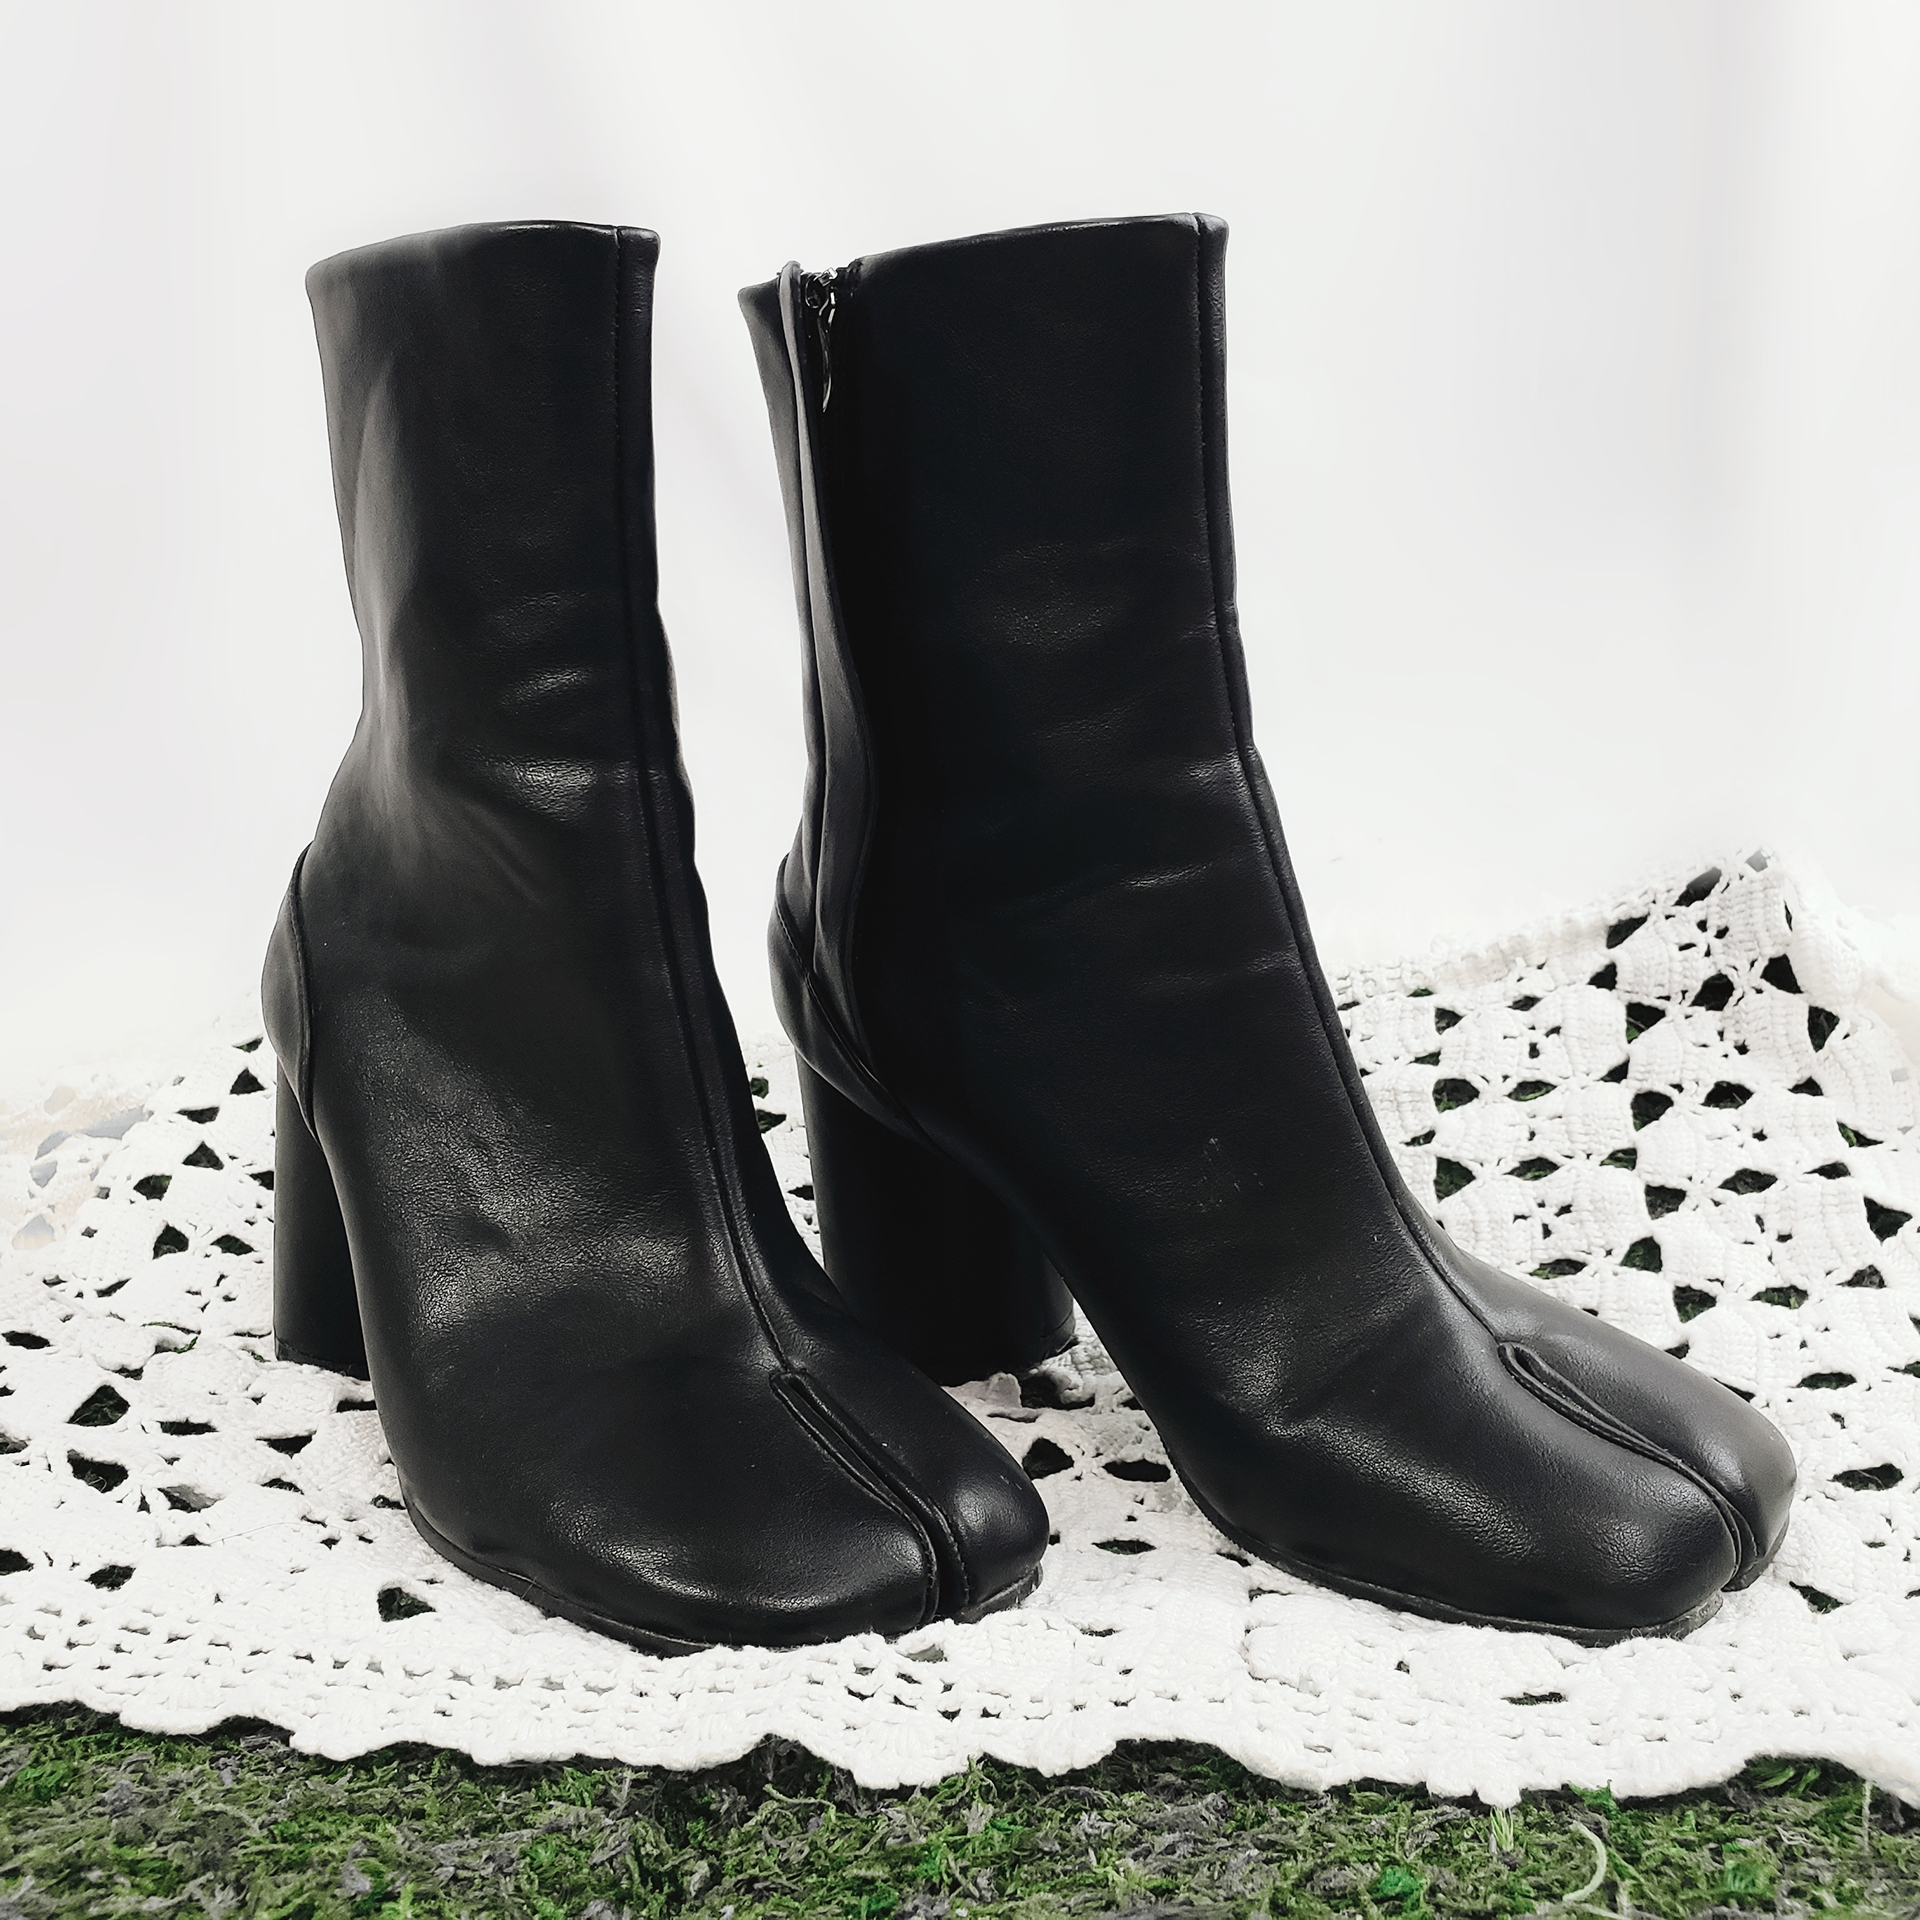 knock off Tabi boots. These boot